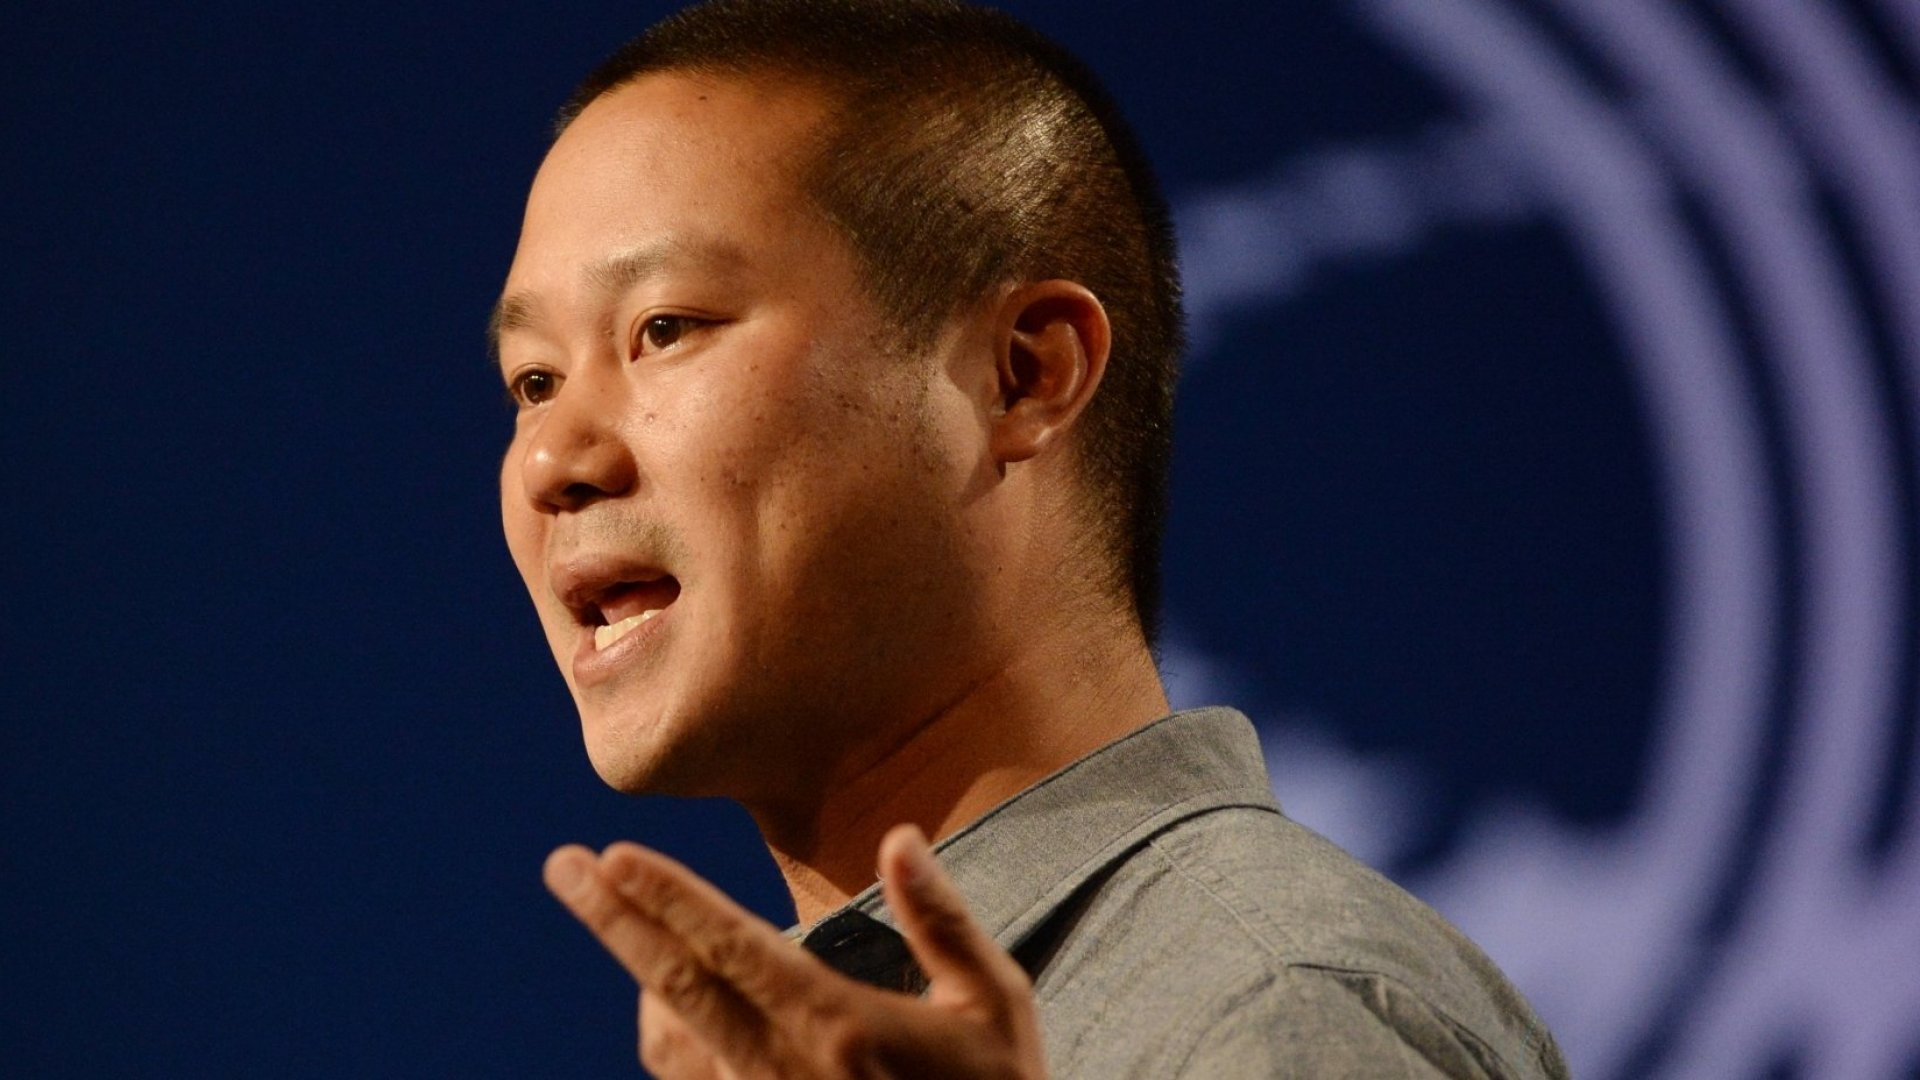 The Best Startup CEOs All Have These 13 Characteristics in Common